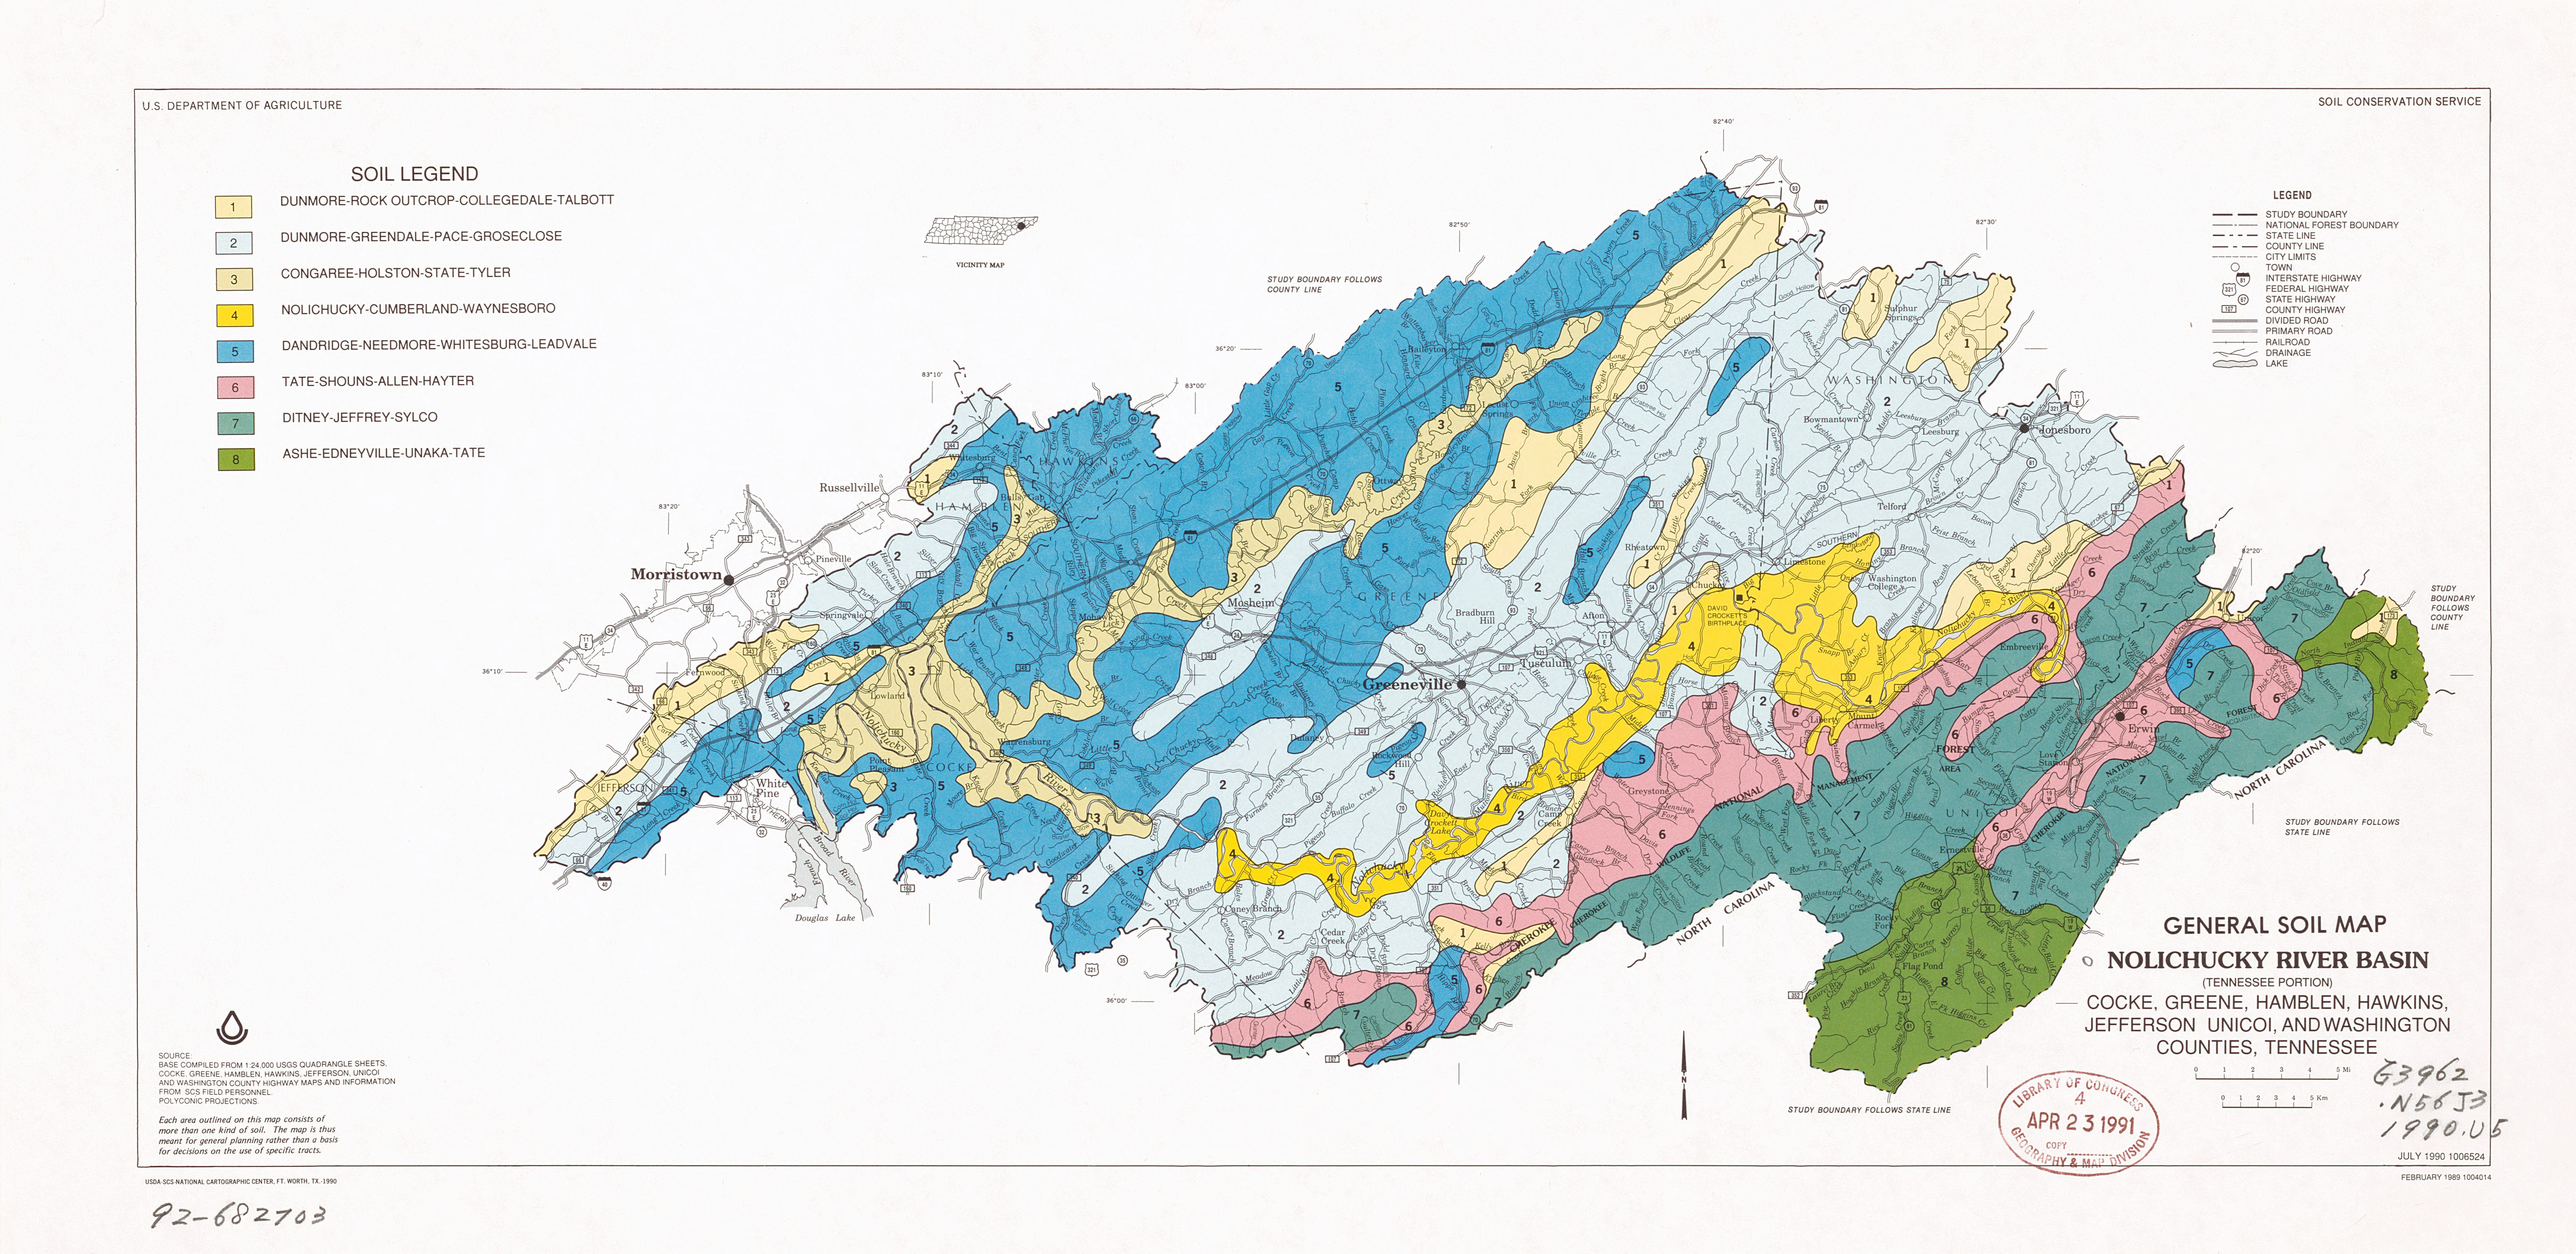 File General Soil Map Nolichucky River Basin Tennessee Portion Cocke Greene Hamblen Hawkins Jefferson Unicoi And Washington Counties Tennessee Loc 92682703 Jpg Wikimedia Commons